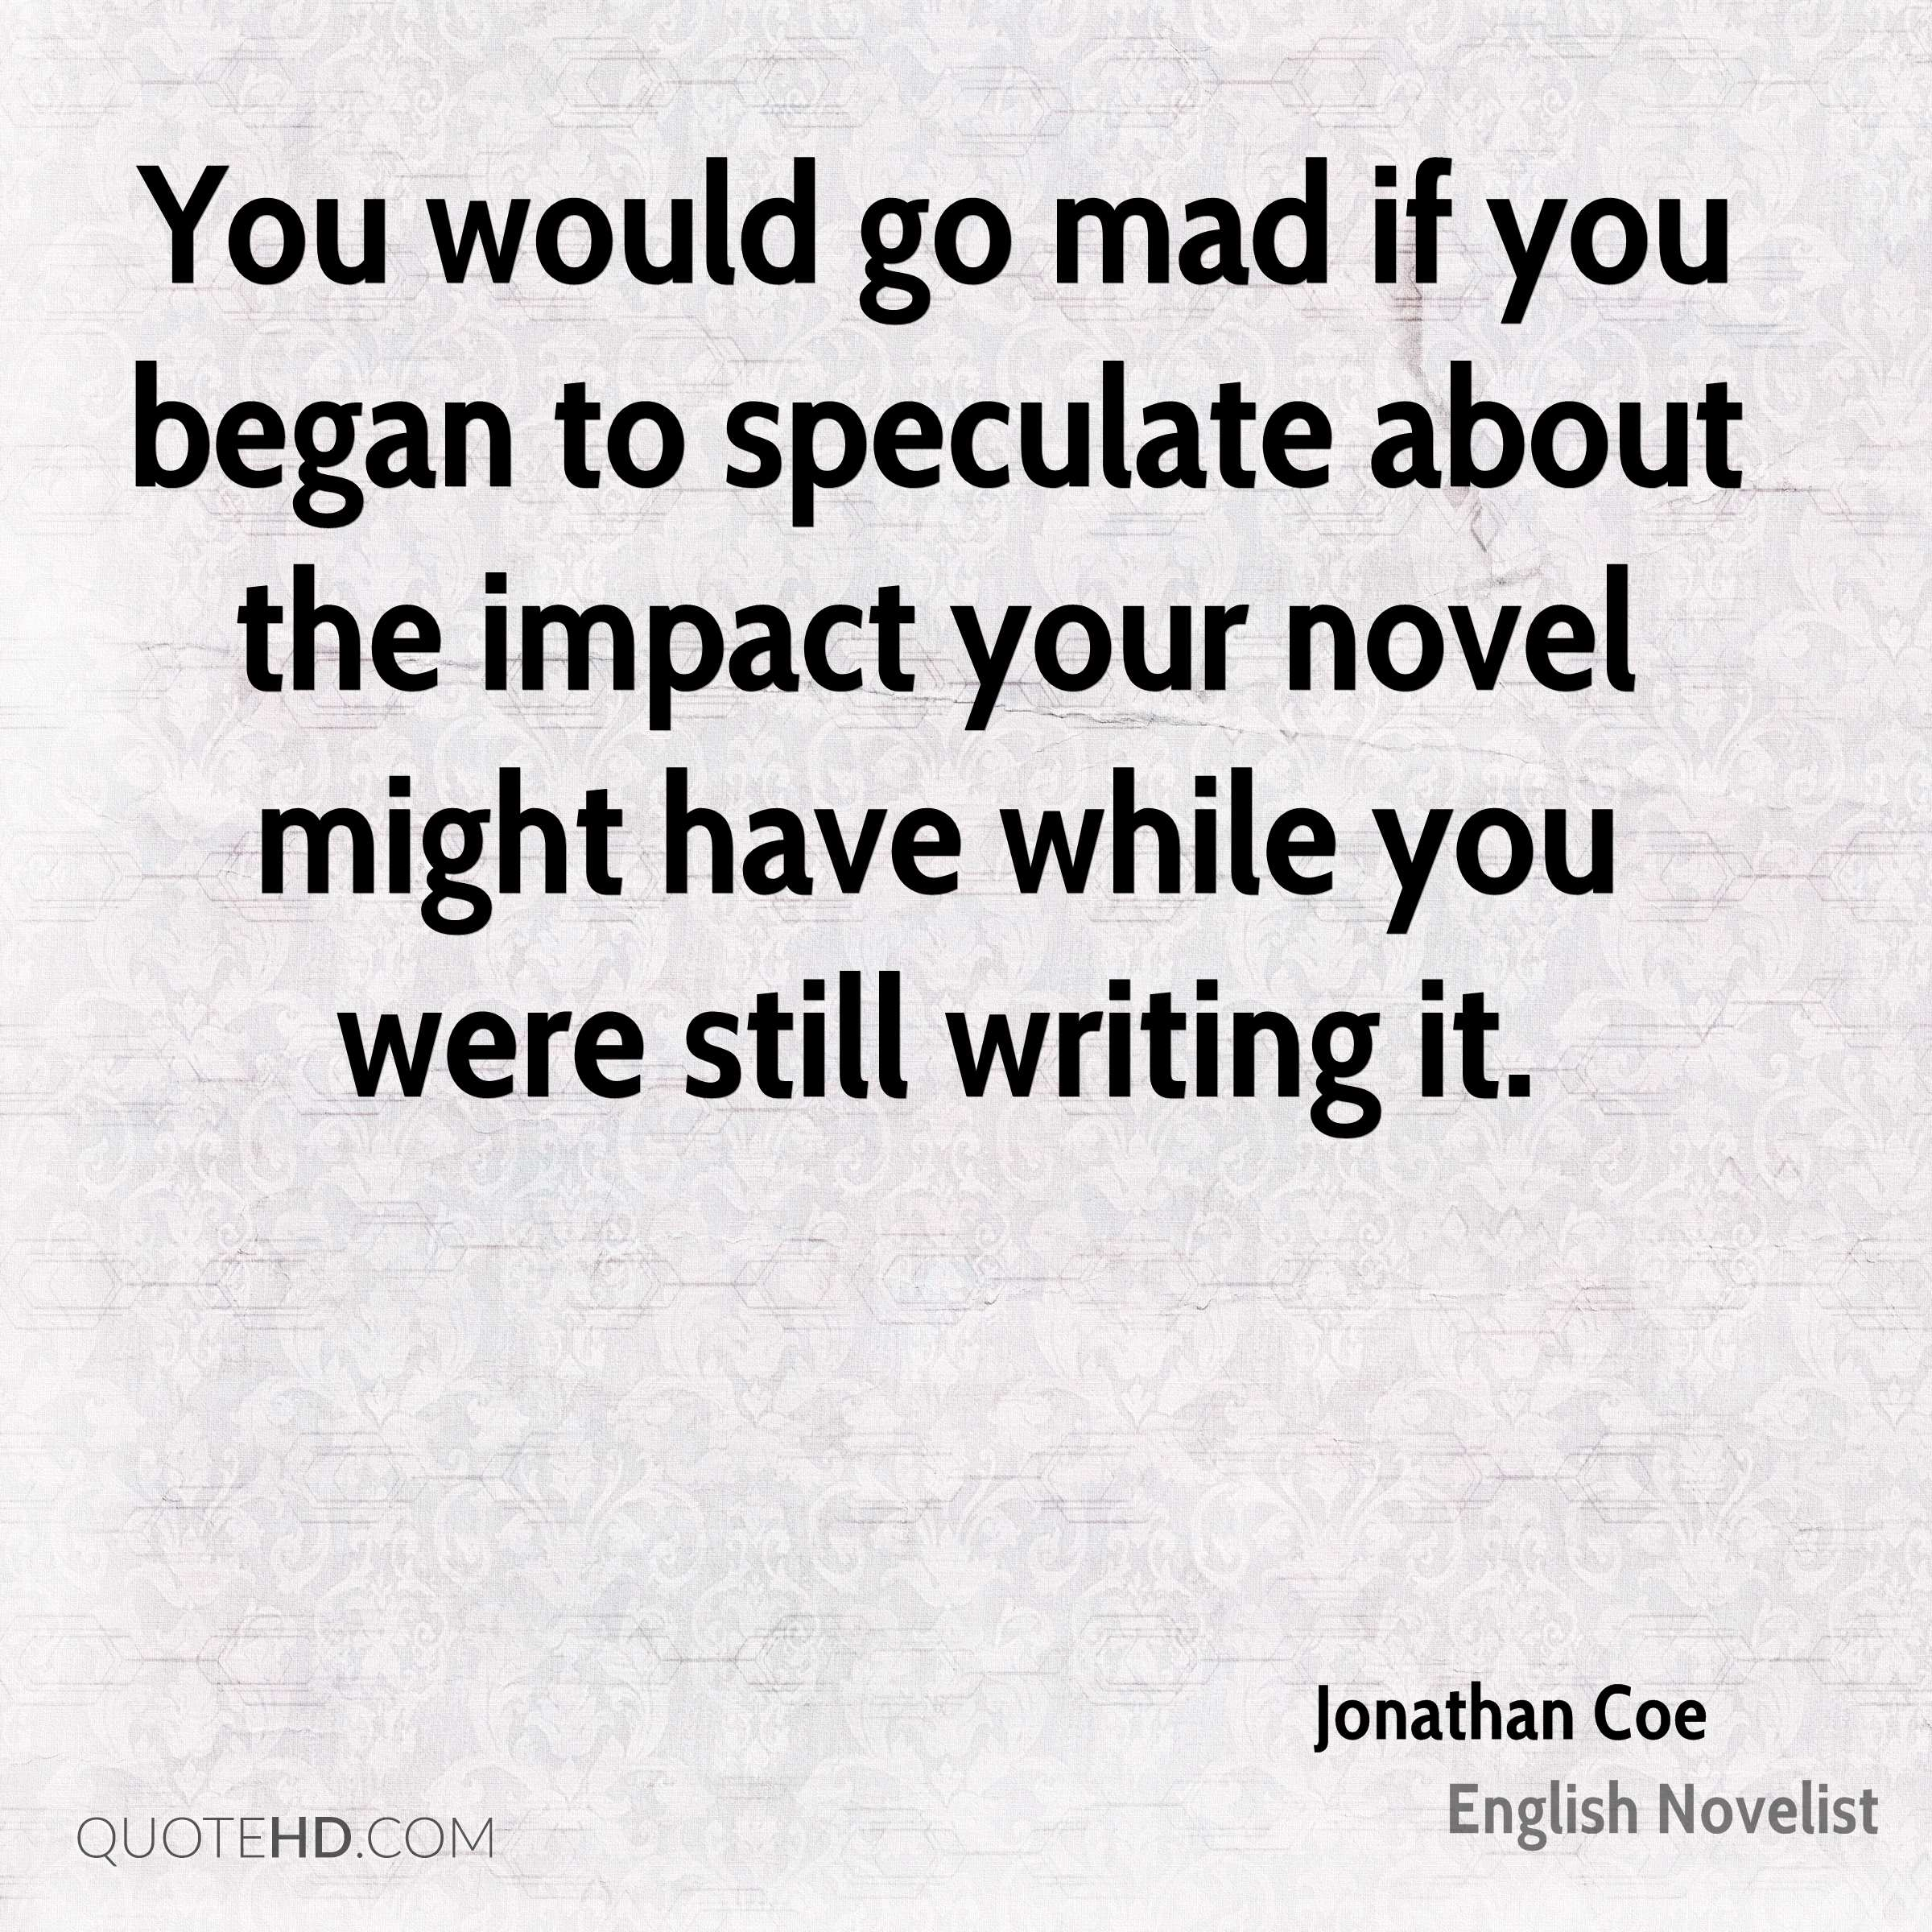 You would go mad if you began to speculate about the impact your novel might have while you were still writing it.